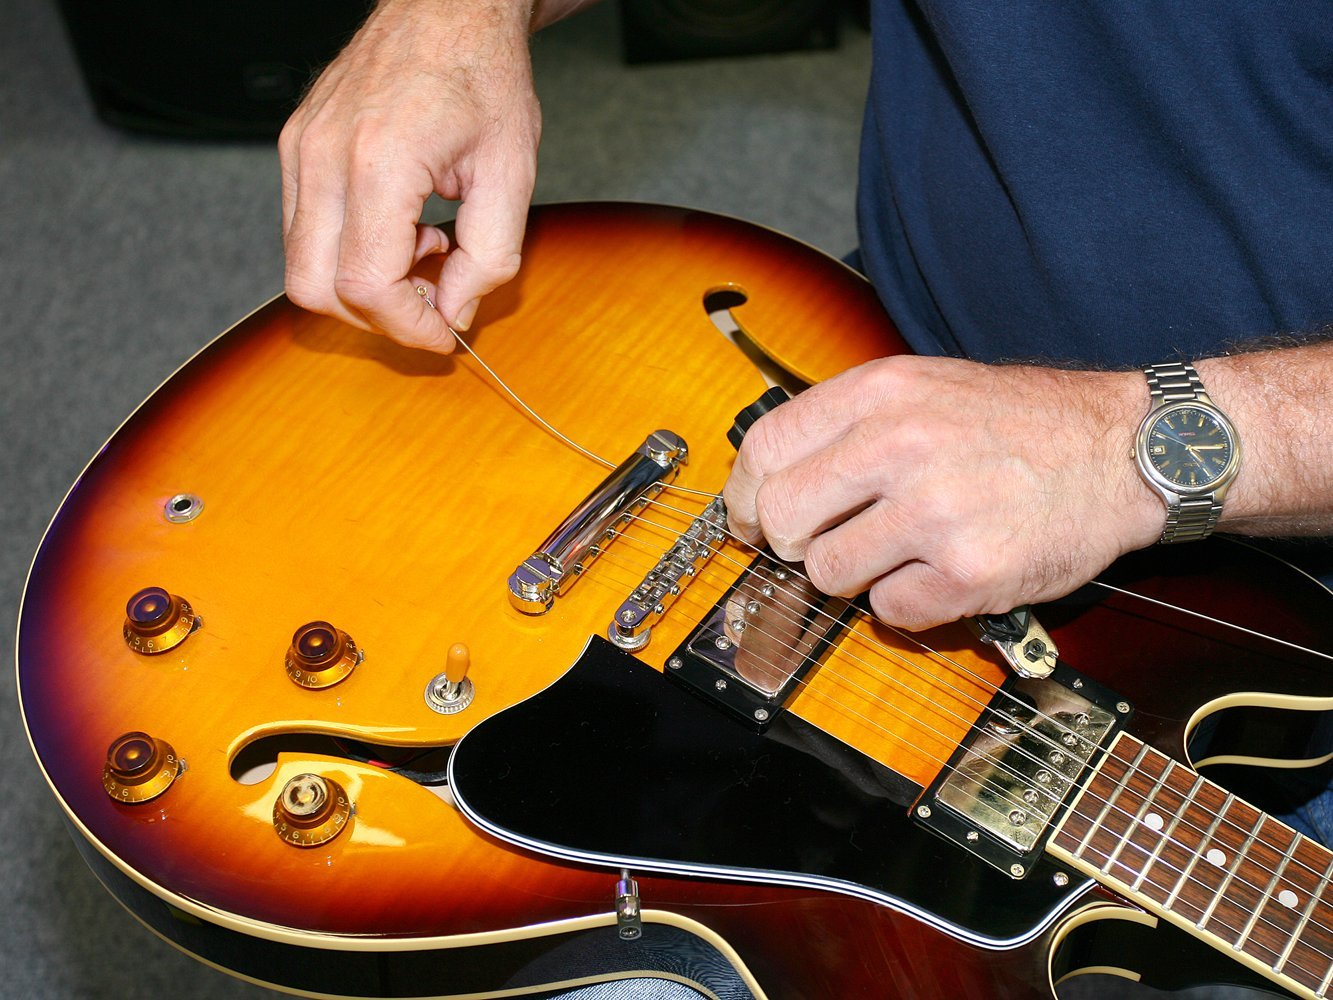 guitar strings being fixed